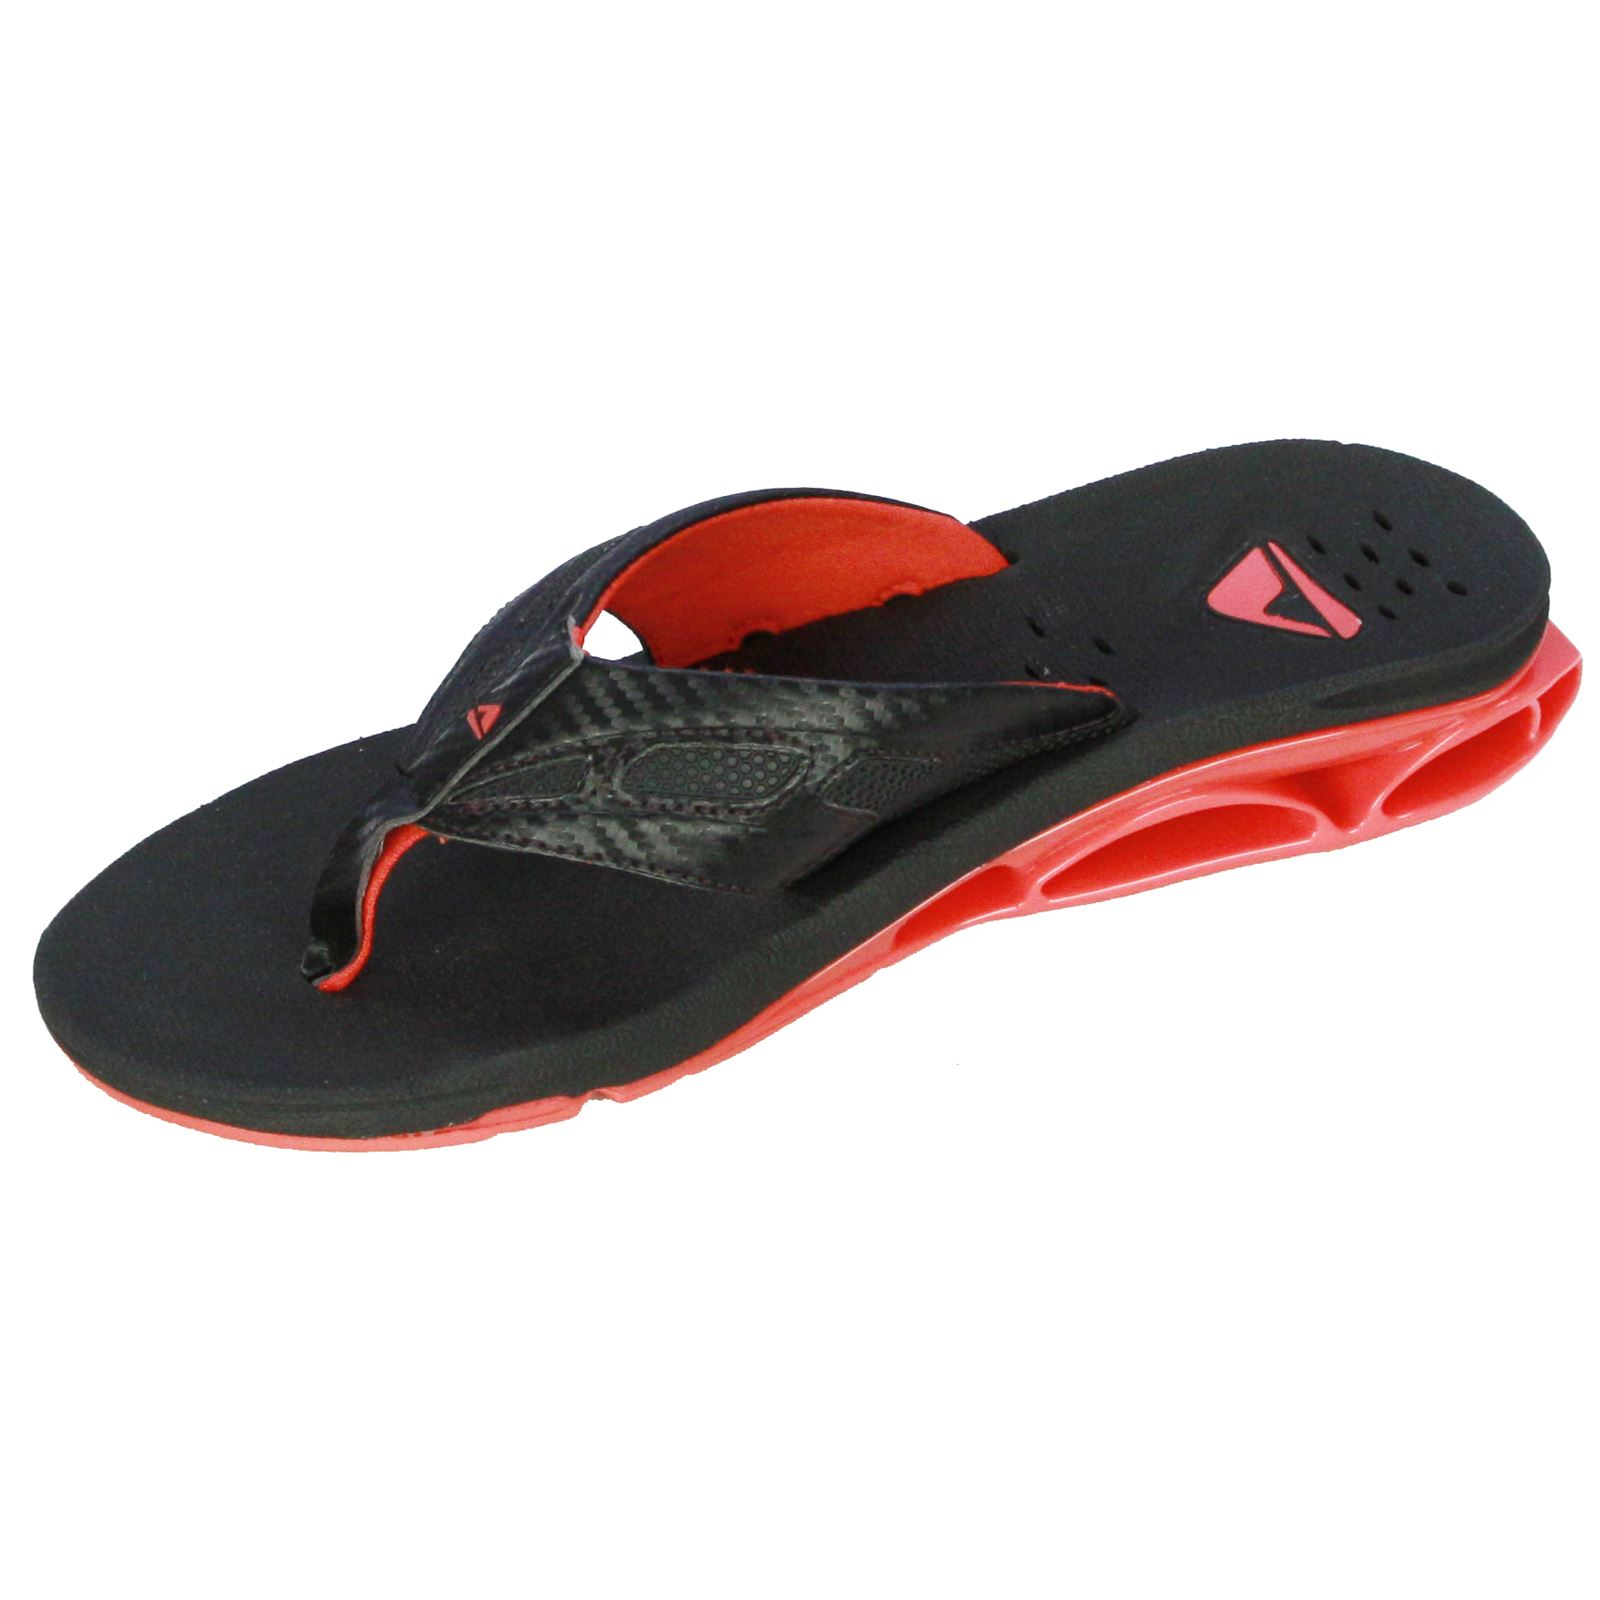 reef men 39 s sandal with bottle opener xs1 red black ebay. Black Bedroom Furniture Sets. Home Design Ideas